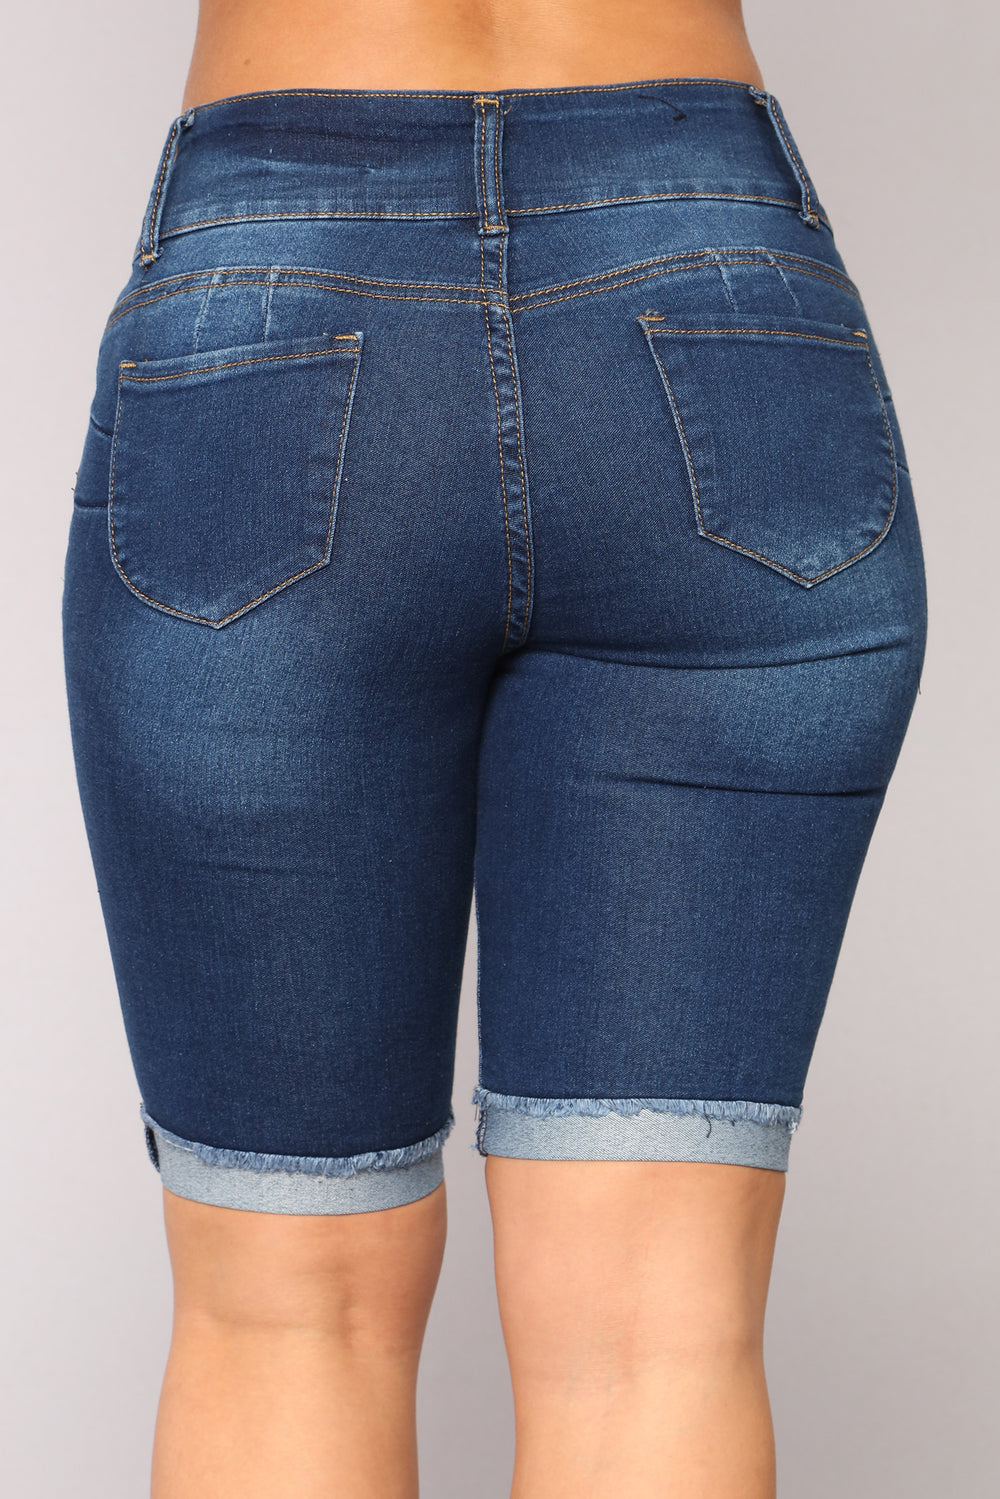 You Need Me Bermudas - Dark Denim